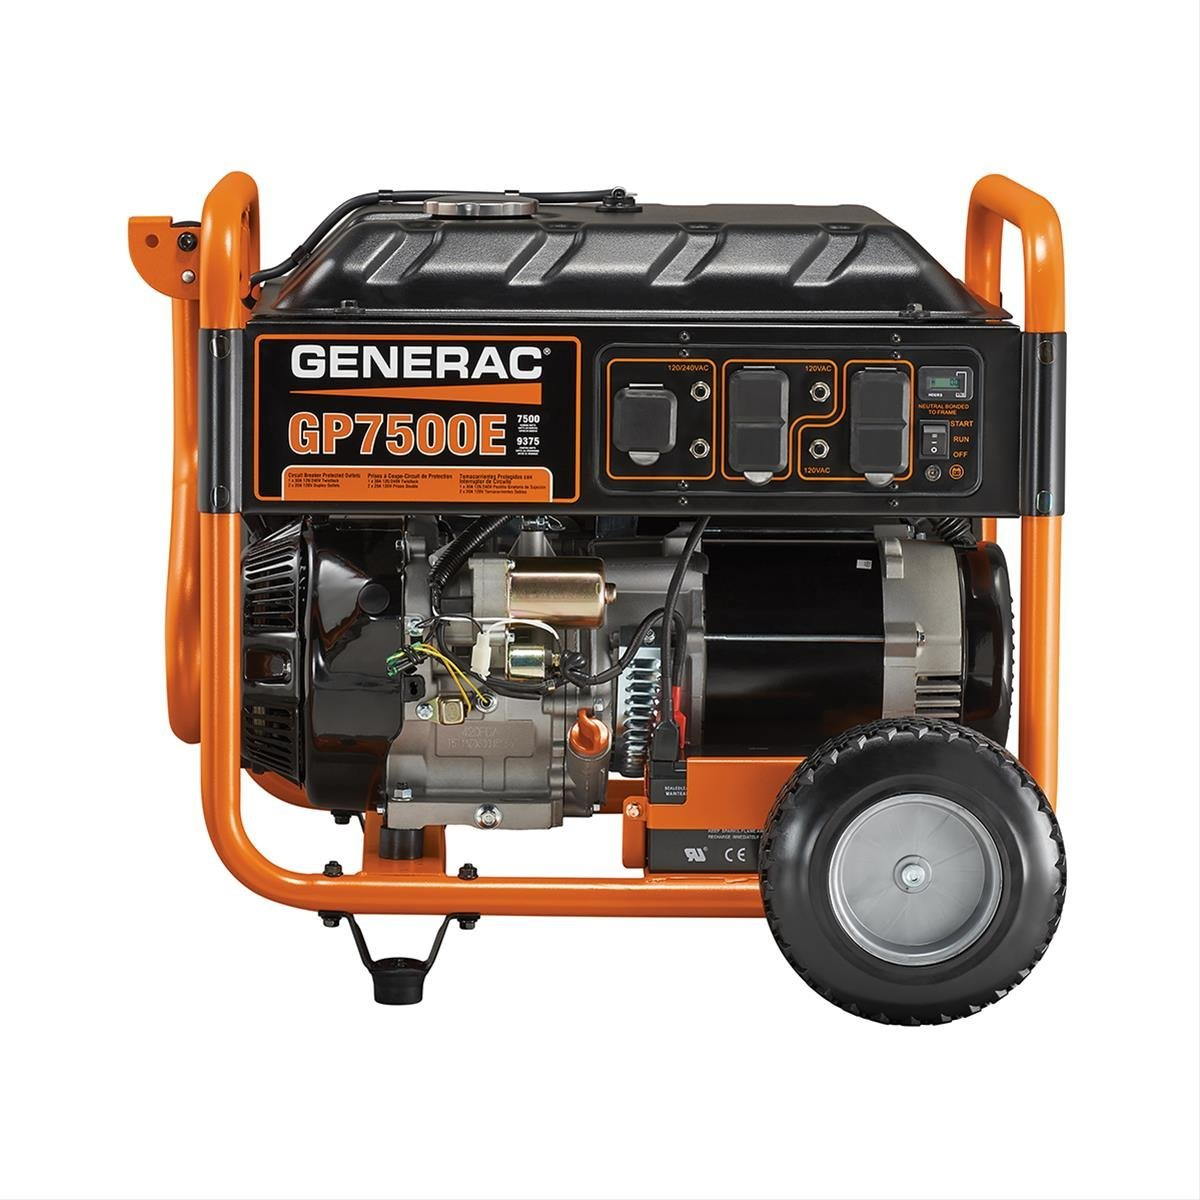 Top 10 Best Portable Generator (2020 Reviews & Buying Guide) 8